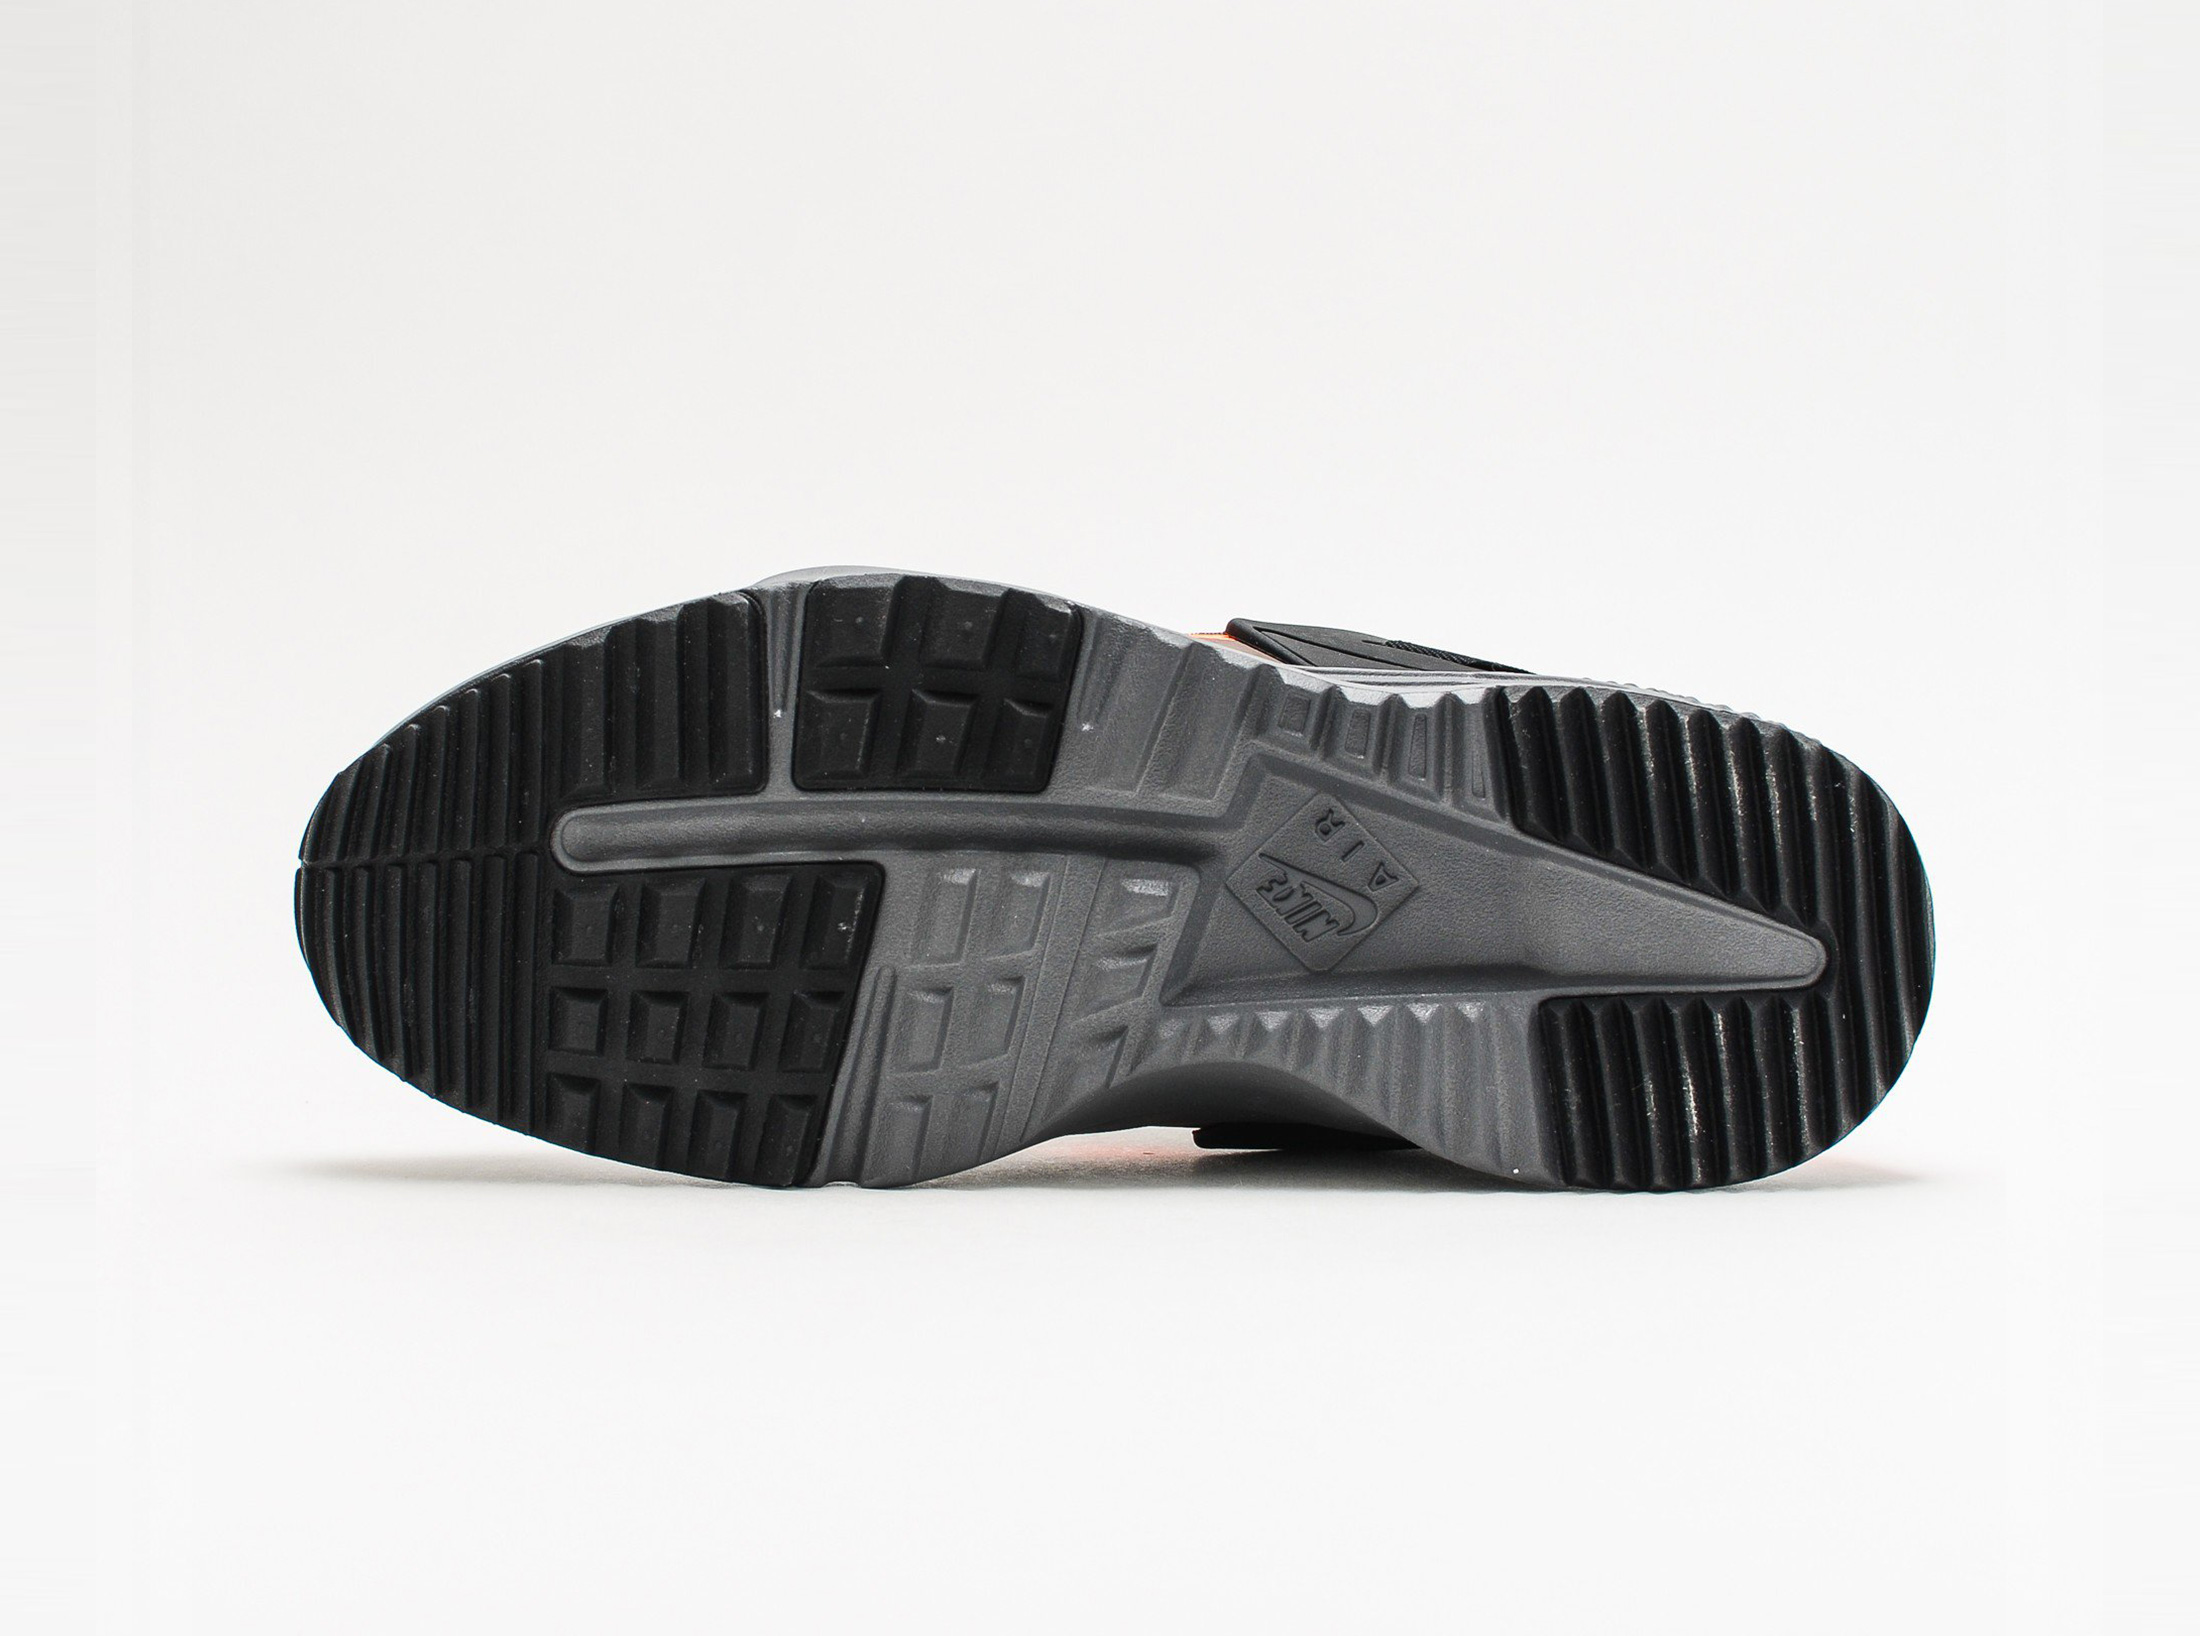 806979-300_sivasdescalzo-Nike-Air-Huarache-Utility-PRM-crbn-grn-ttl-orng-anthracite-806979-300-6